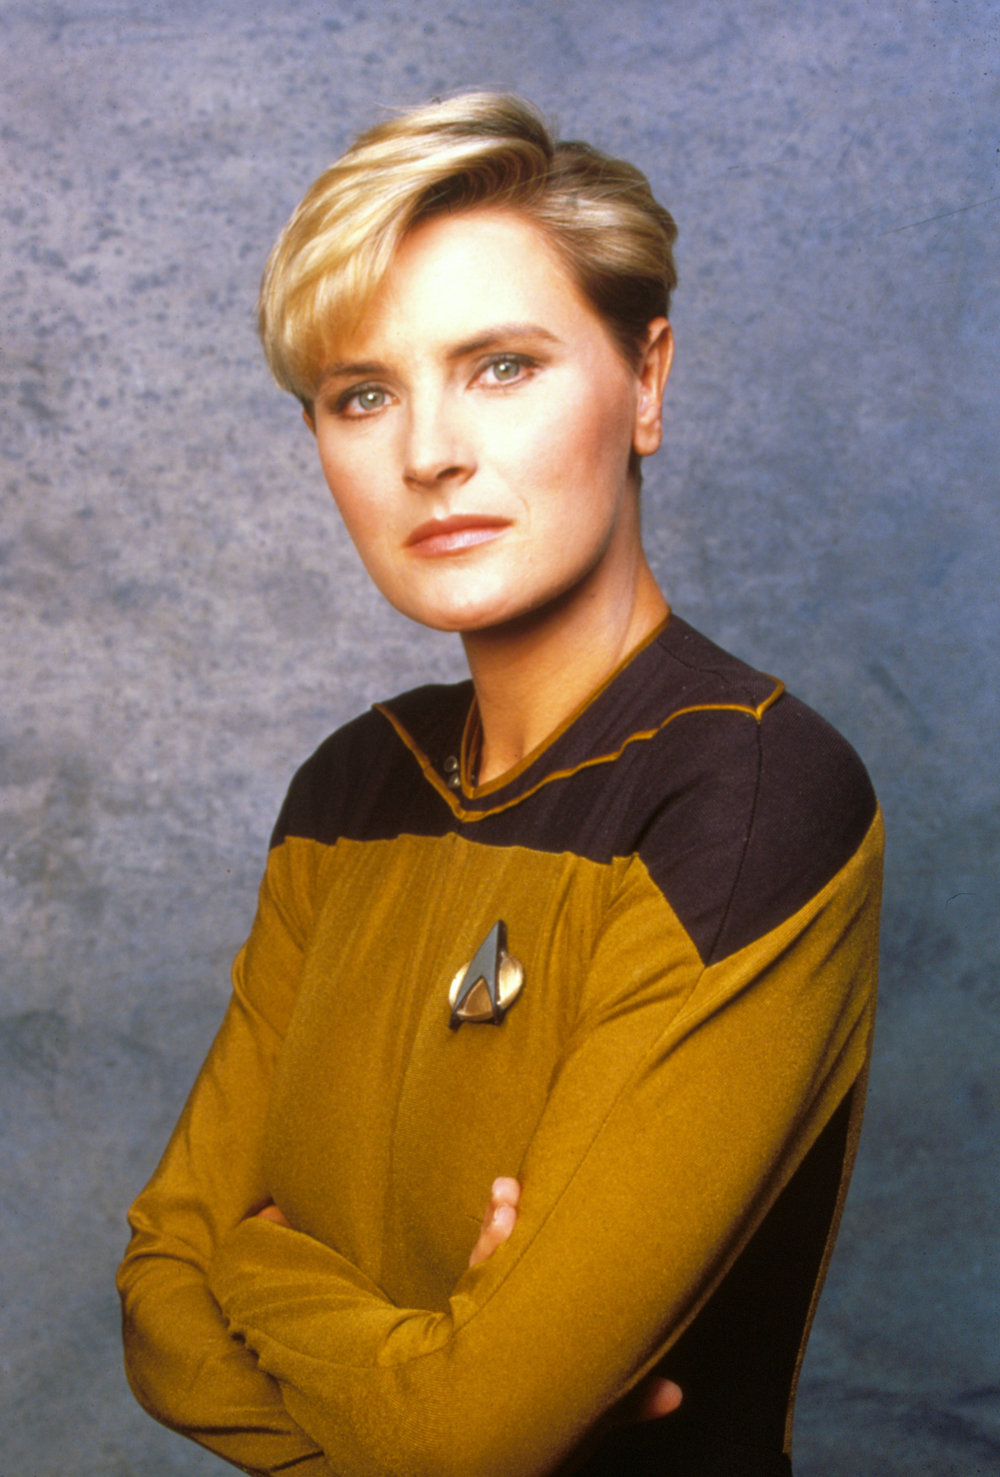 Star Trek: Next Generation favorite Denise Crosby will appear at Kelowna Comic Con Aug.25 & 26